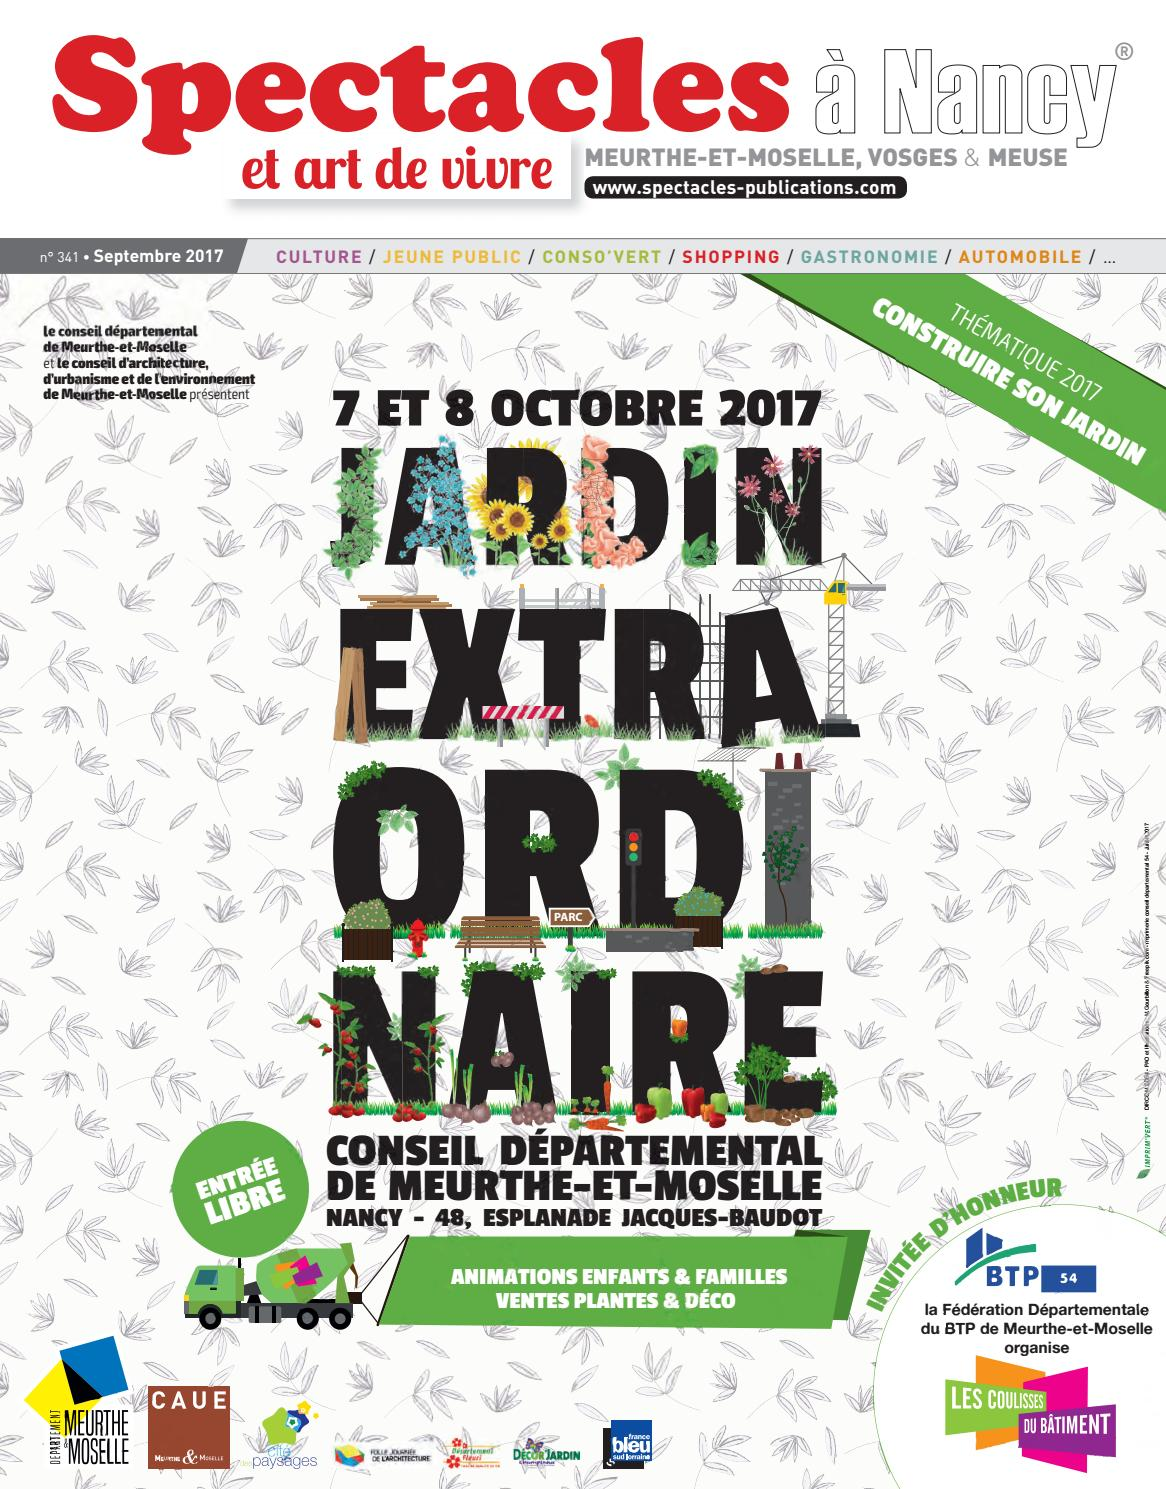 Agent D Entretien Meurthe Et Moselle spectacles publications nancy n°341 / septembre 2017